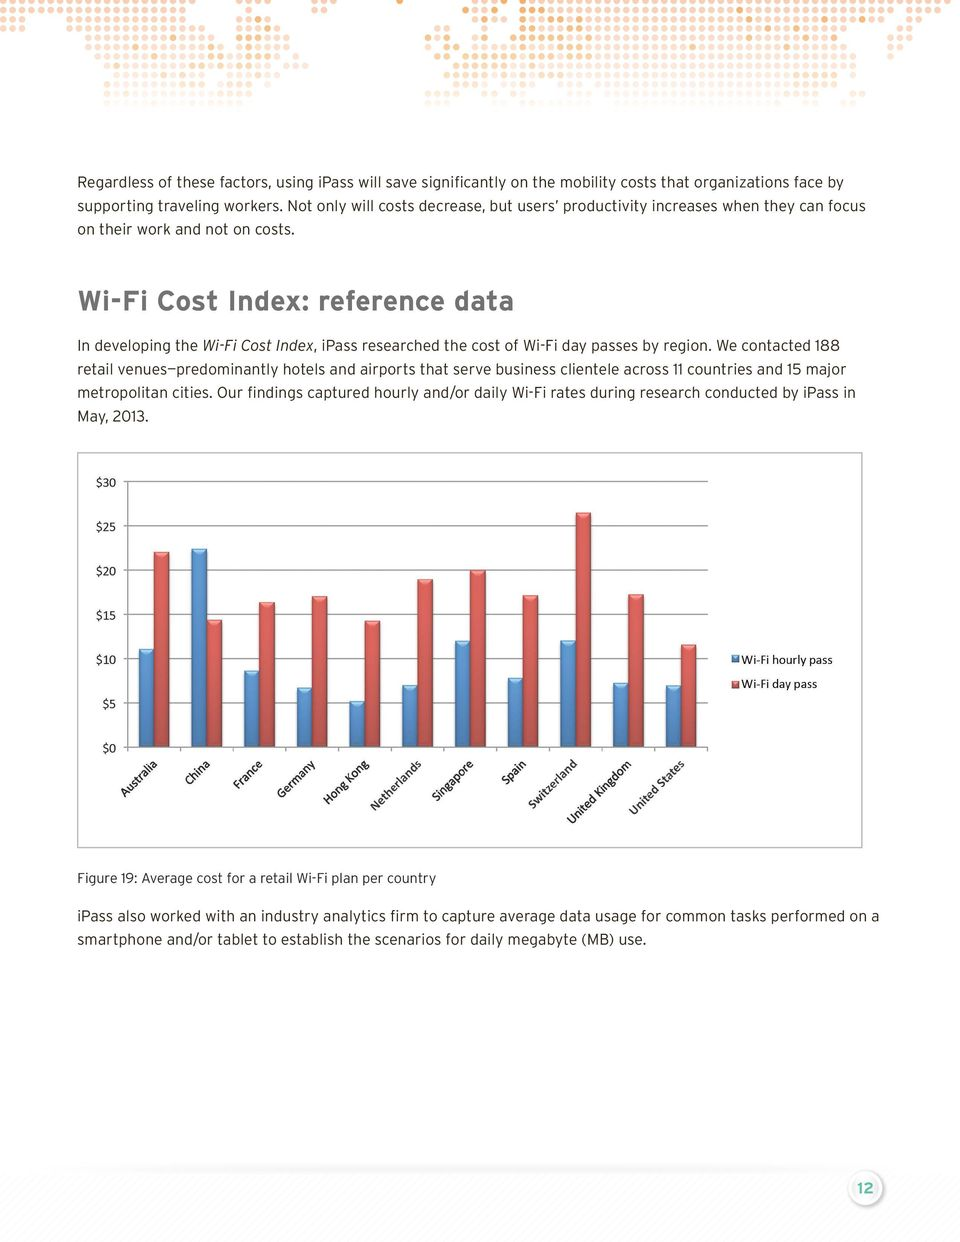 Wi-Fi Cost Index: reference data In developing the Wi-Fi Cost Index, ipass researched the cost of Wi-Fi day passes by region.